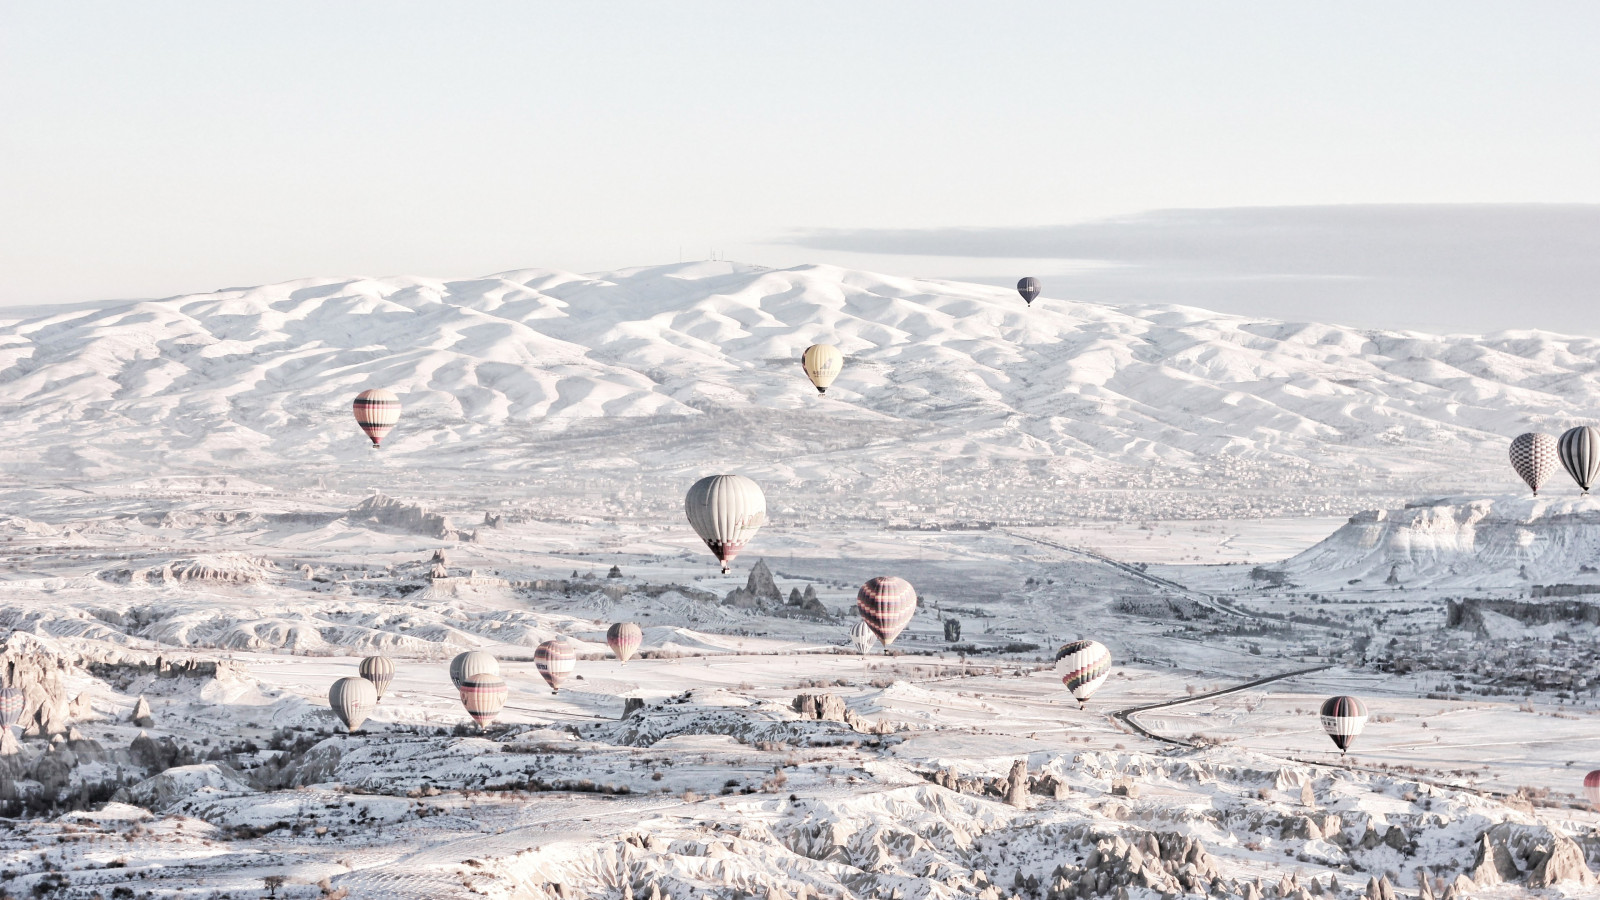 Hot air balloons in Winter landscape wallpaper 1600x900